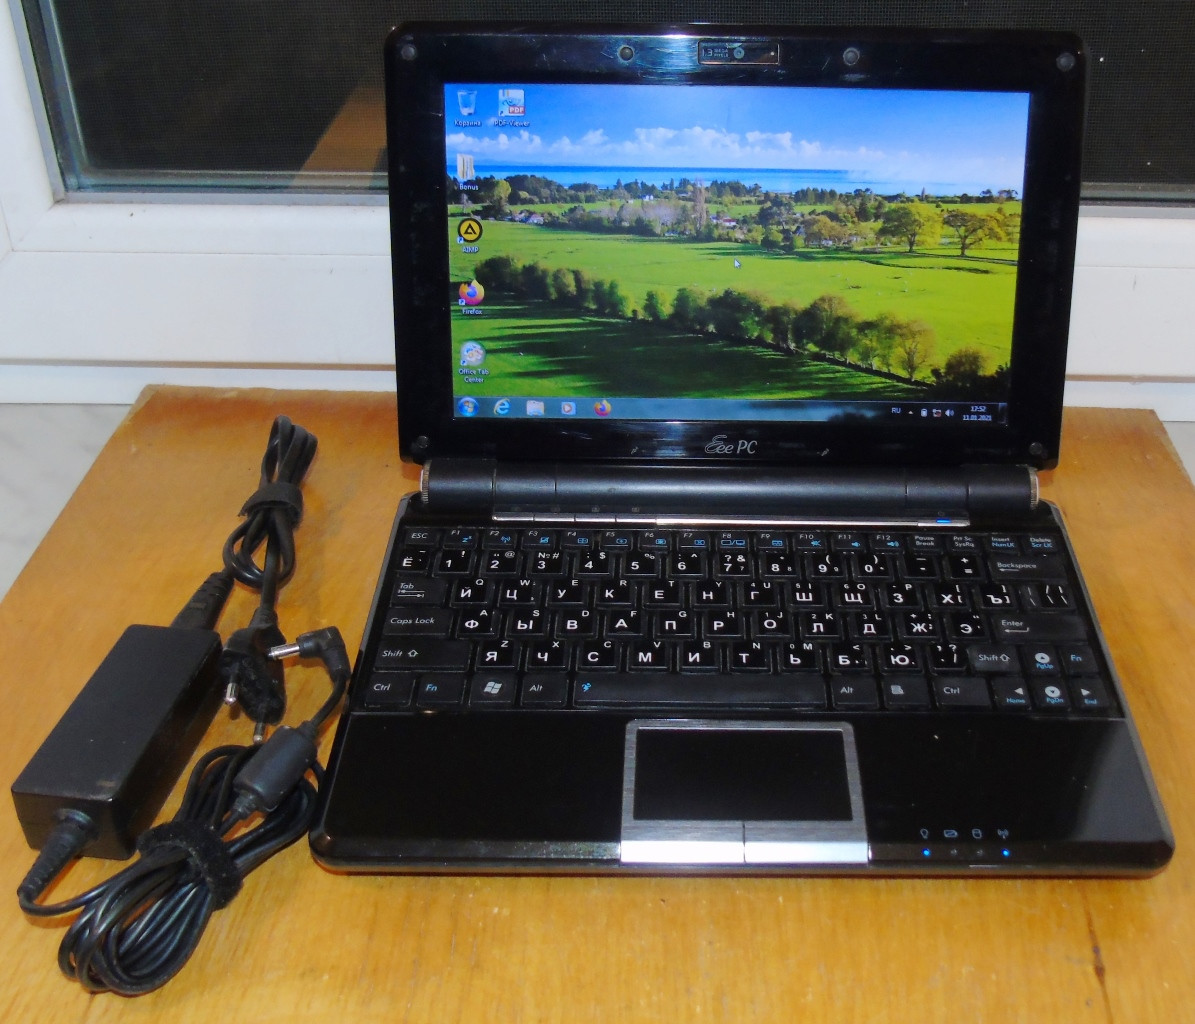 Нетбук ASUS Eee PC 1000HE Intel Atom N280, 2GB DDR2, 160GB HDD Hitachi